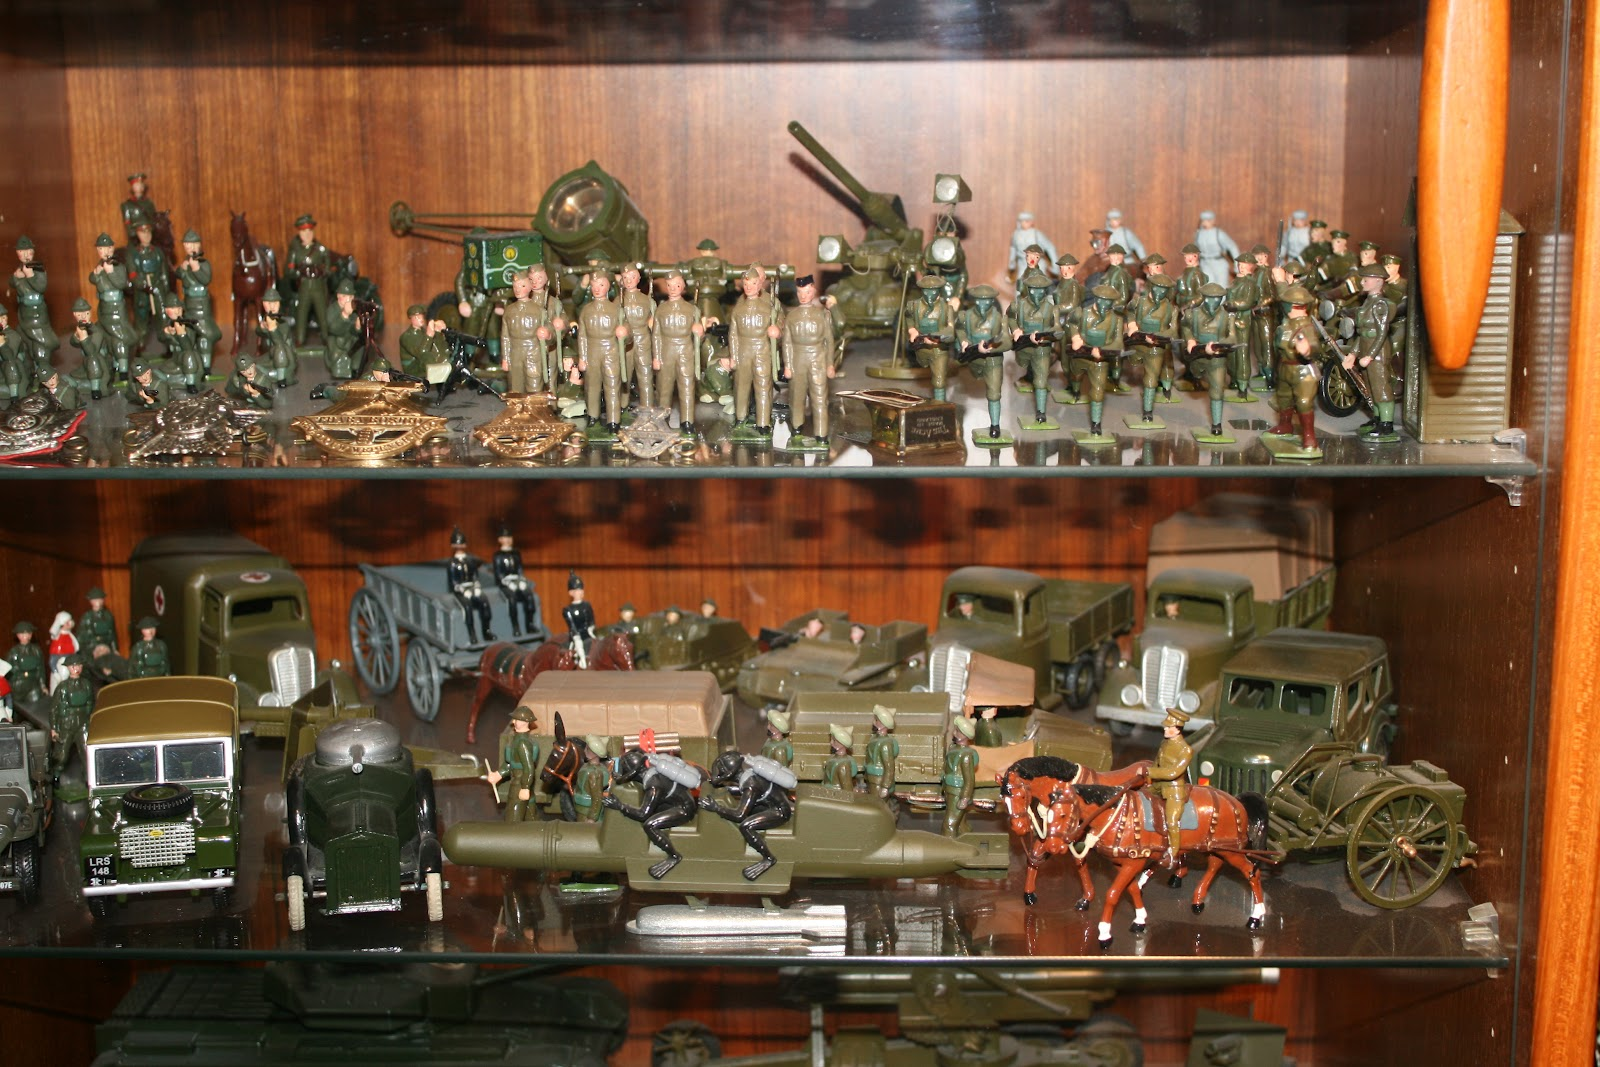 Dating britains toy soldiers